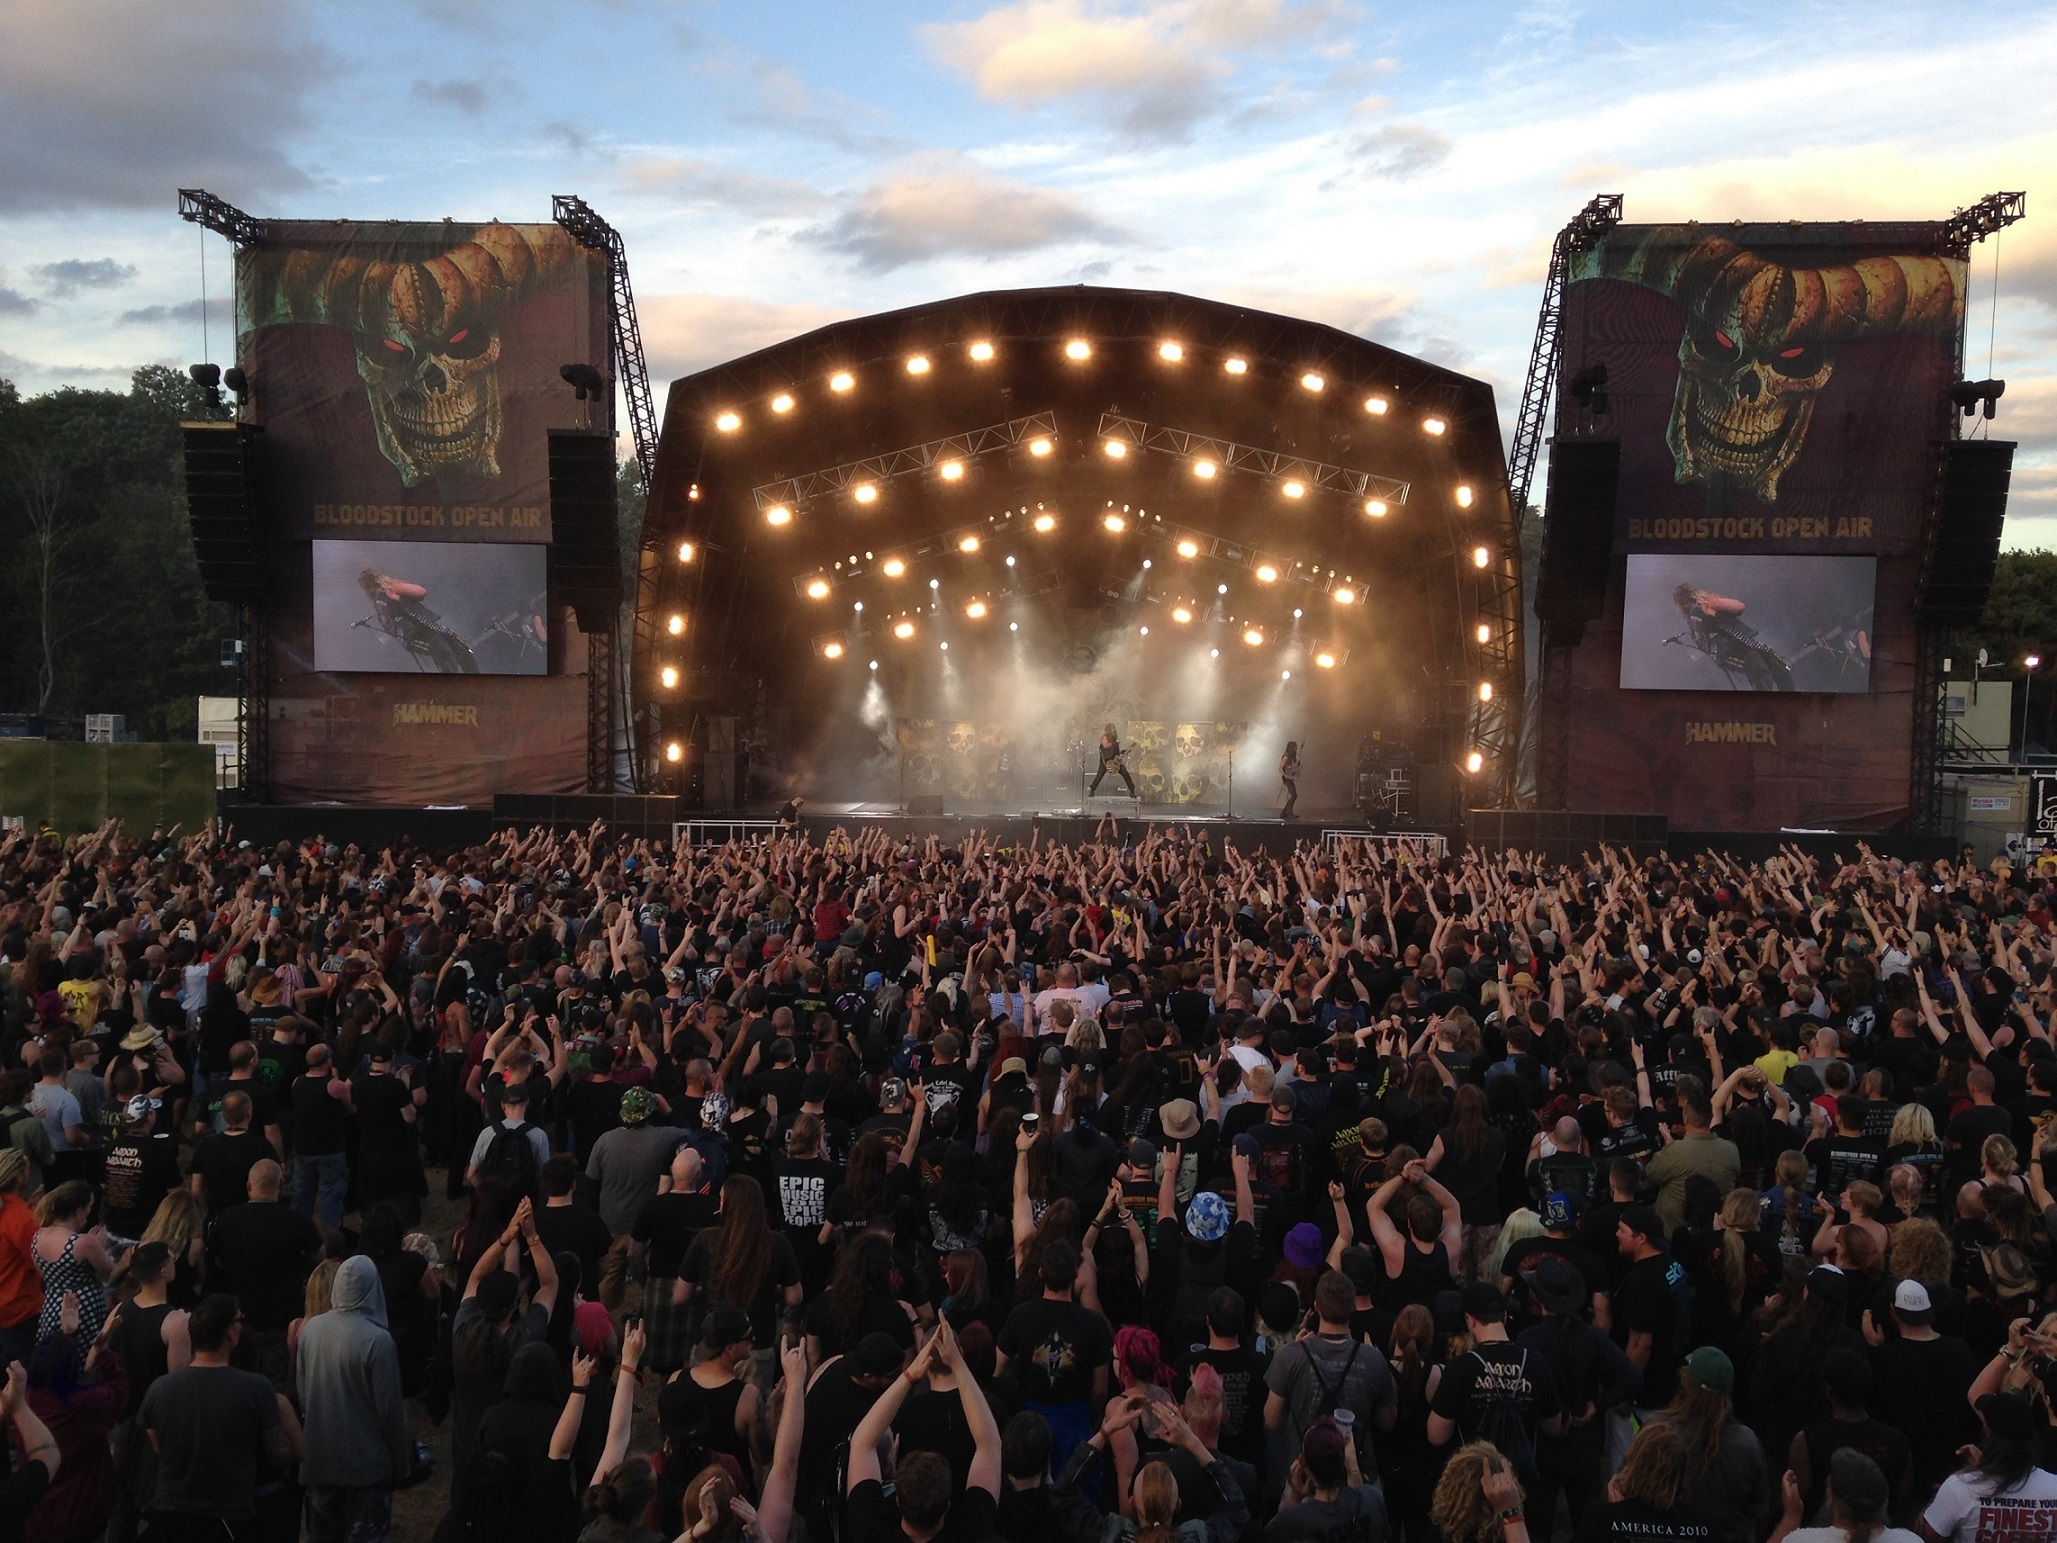 Avolites Titan rocks the party at Bloodstock Festival